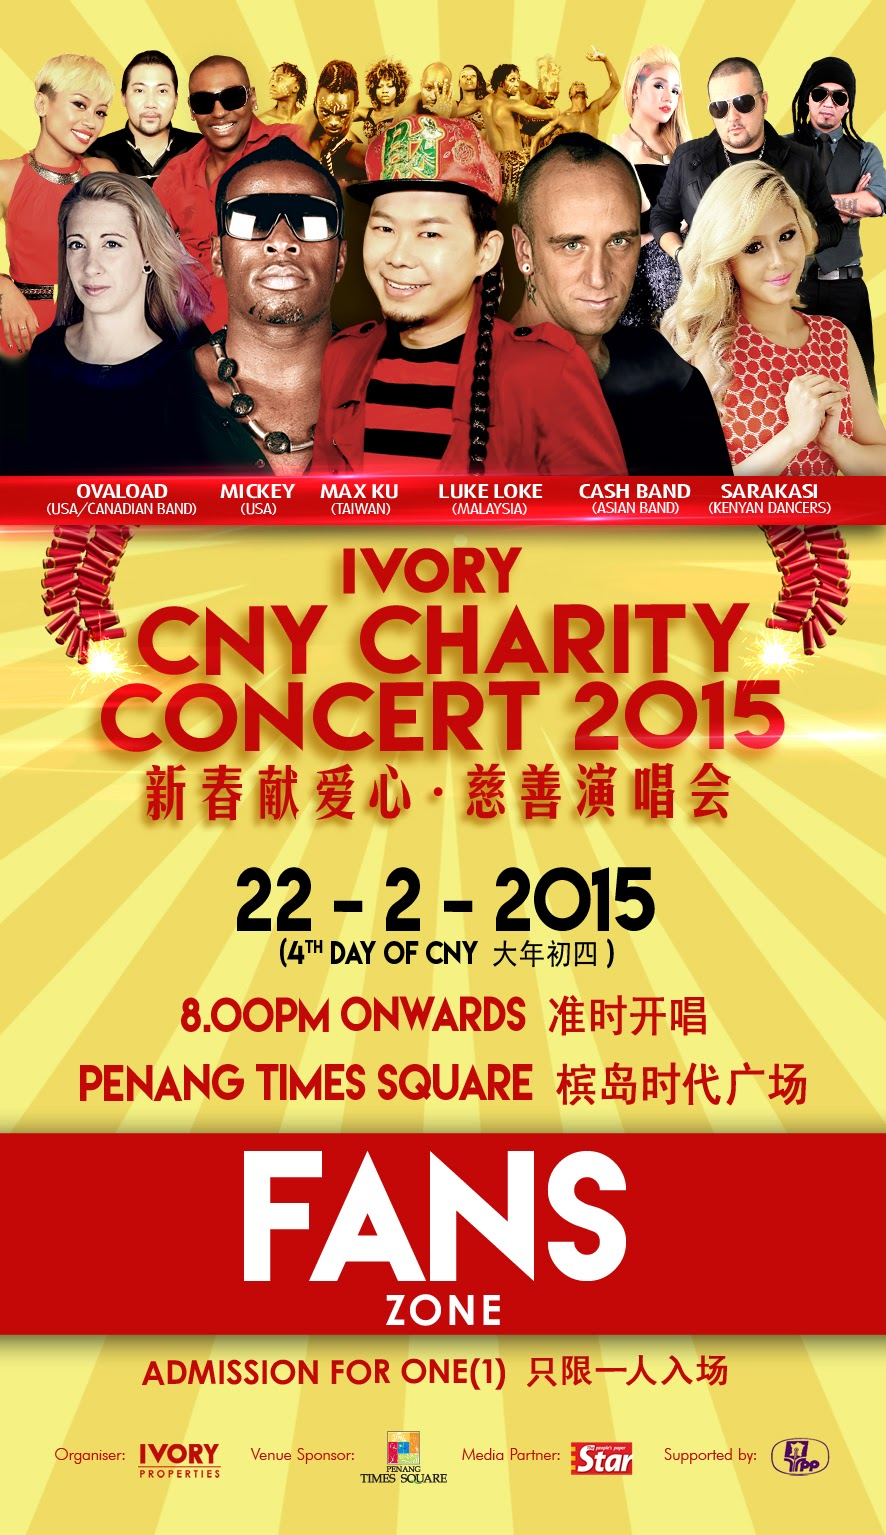 ♥ vault of camy ivory cny charity concert 2015 ivory cny charity concert 2015